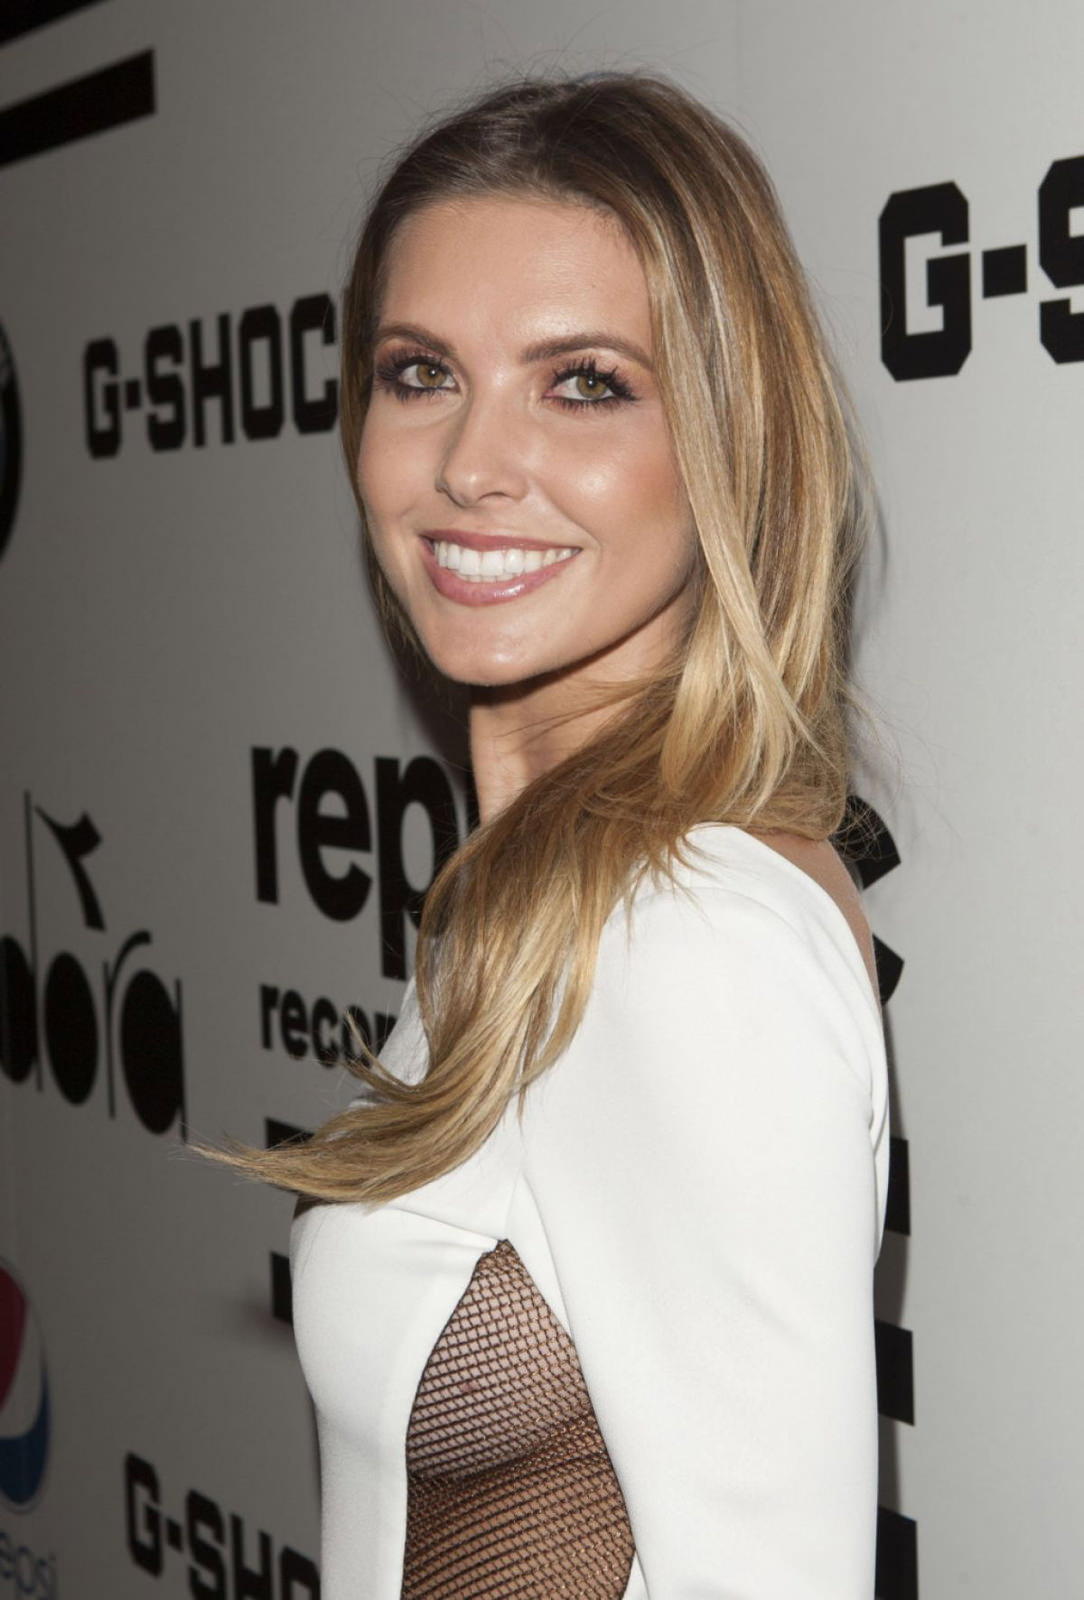 Audrina Patridge Photo Gallery